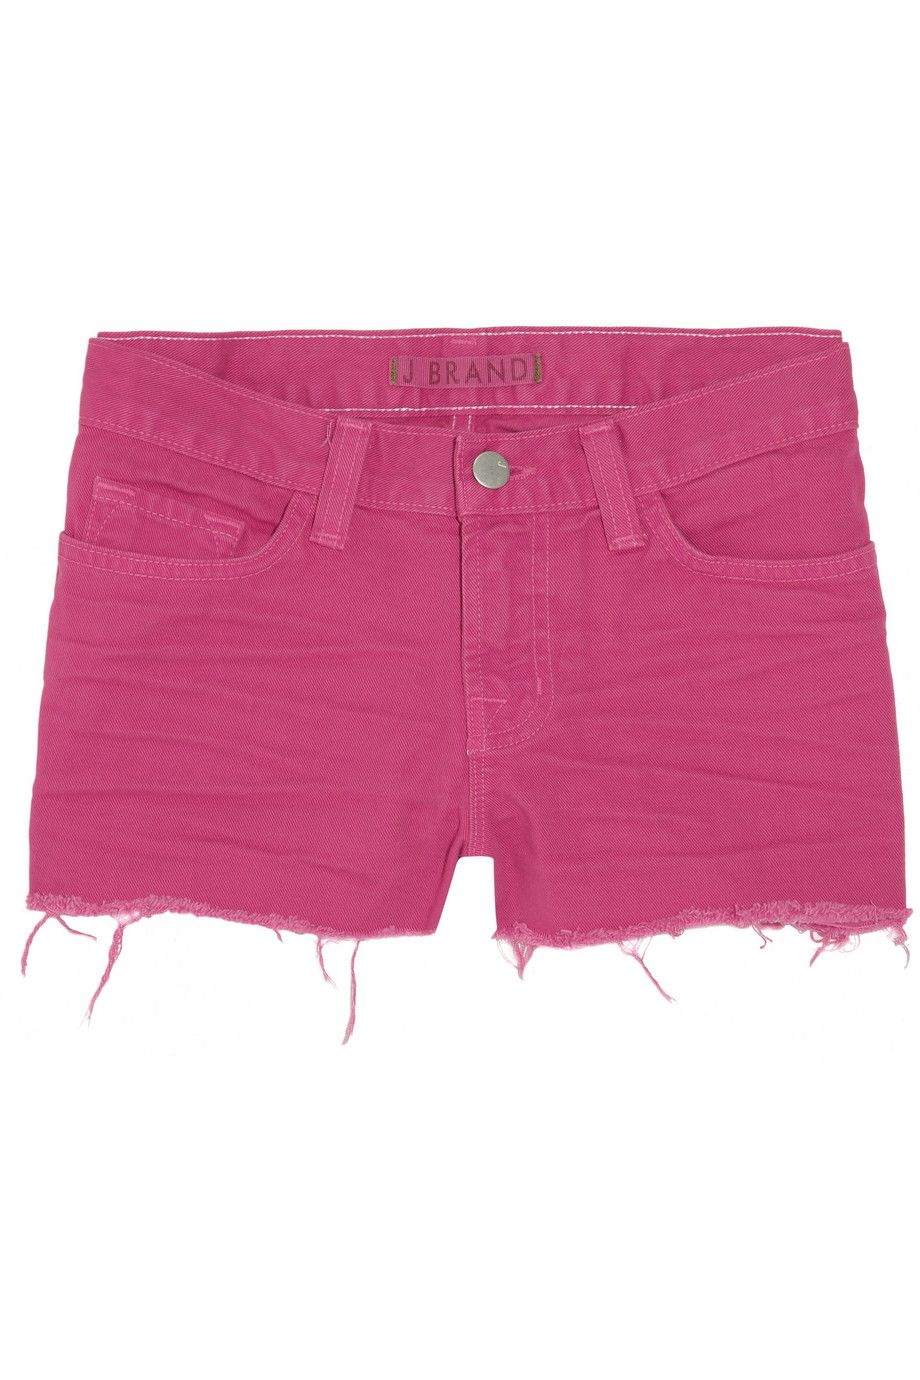 J Brand Cut-off denim shorts - 55% Off Now at THE OUTNET